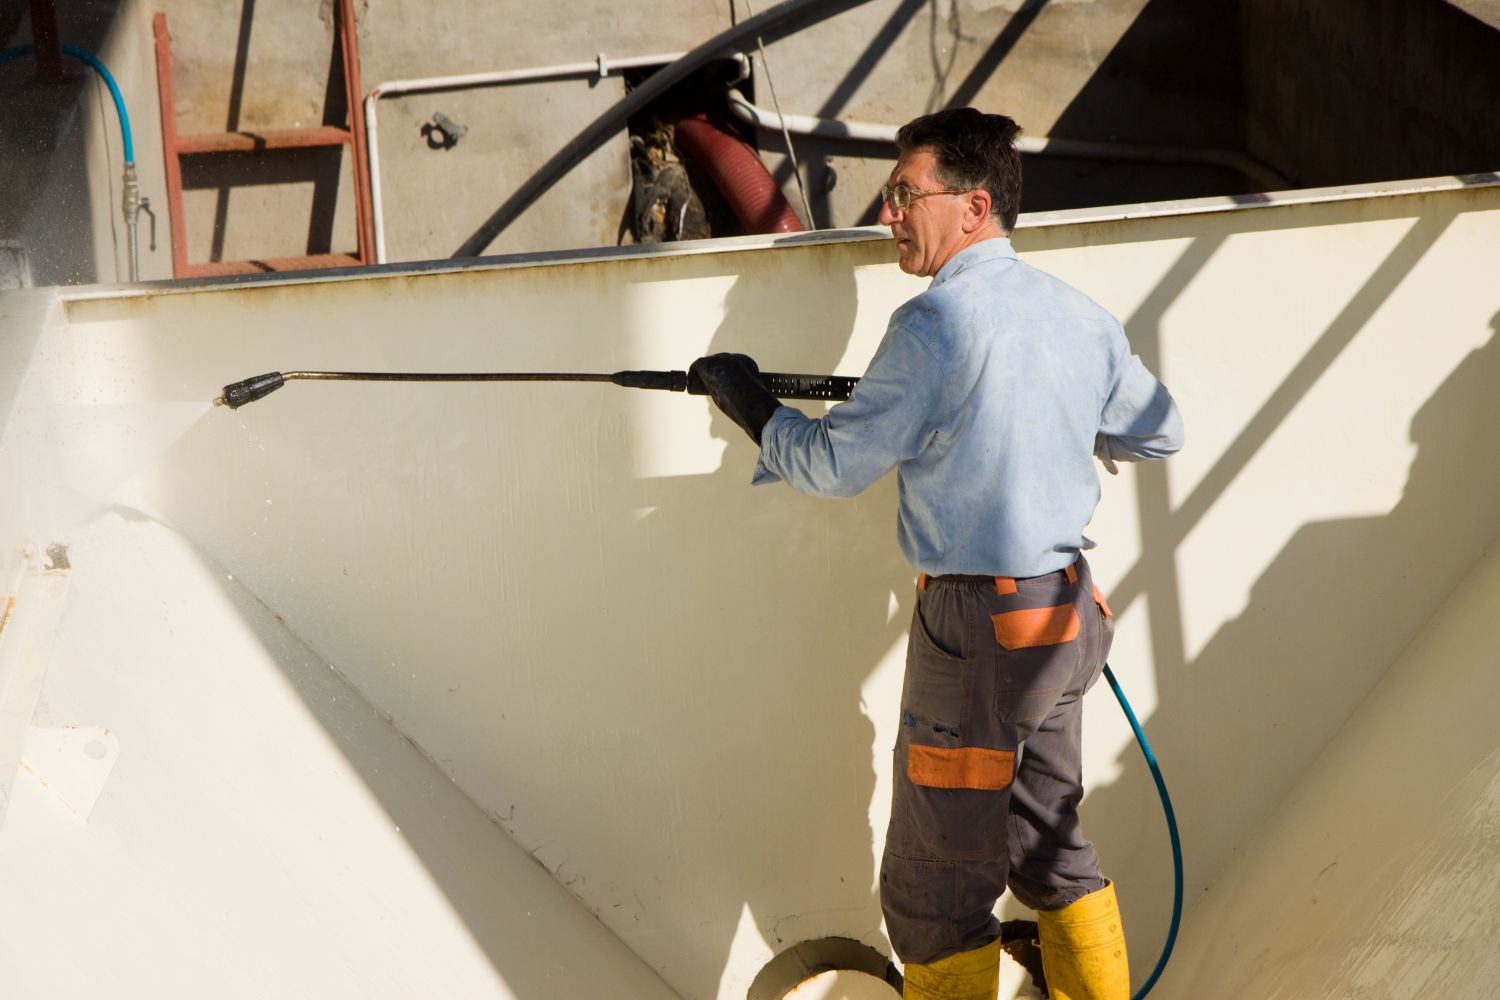 Pressure washing and painting services in Whitefish, MT and The Flathead Valley